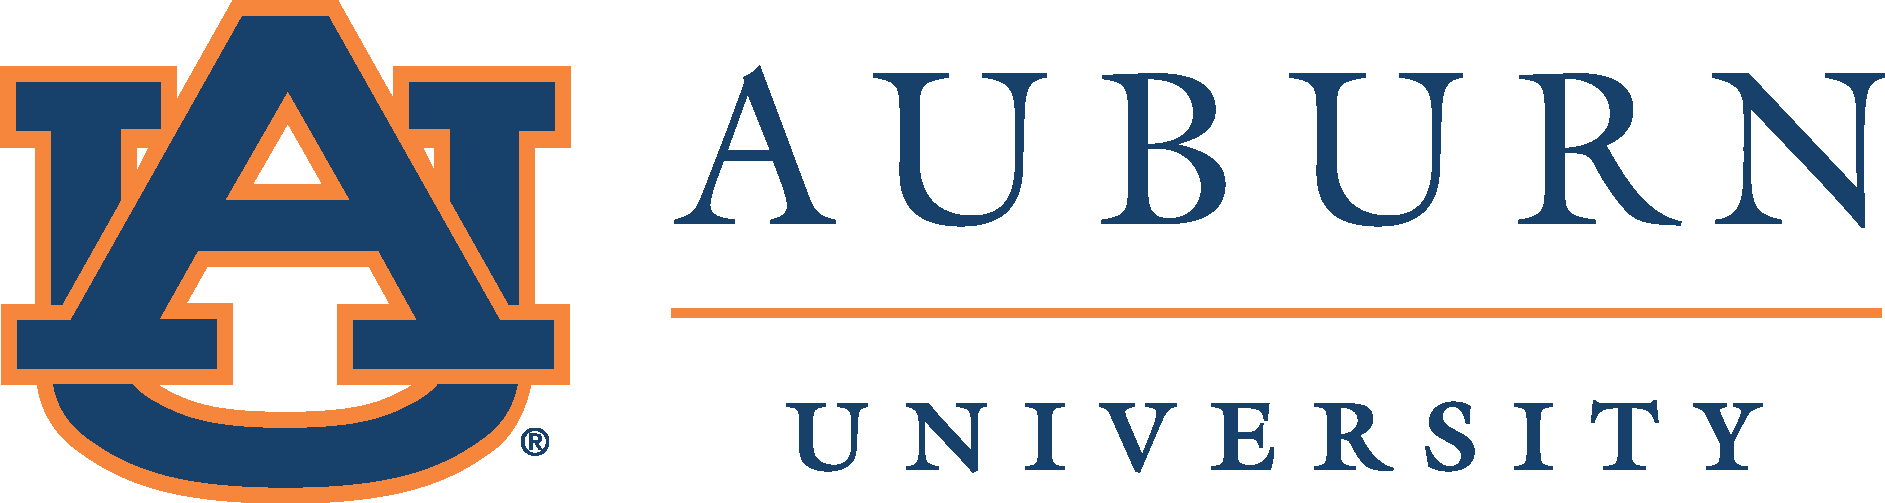 auburn university seal and logos vector eps free download logo rh freelogovectors net auburn university logo images auburn university logo projector